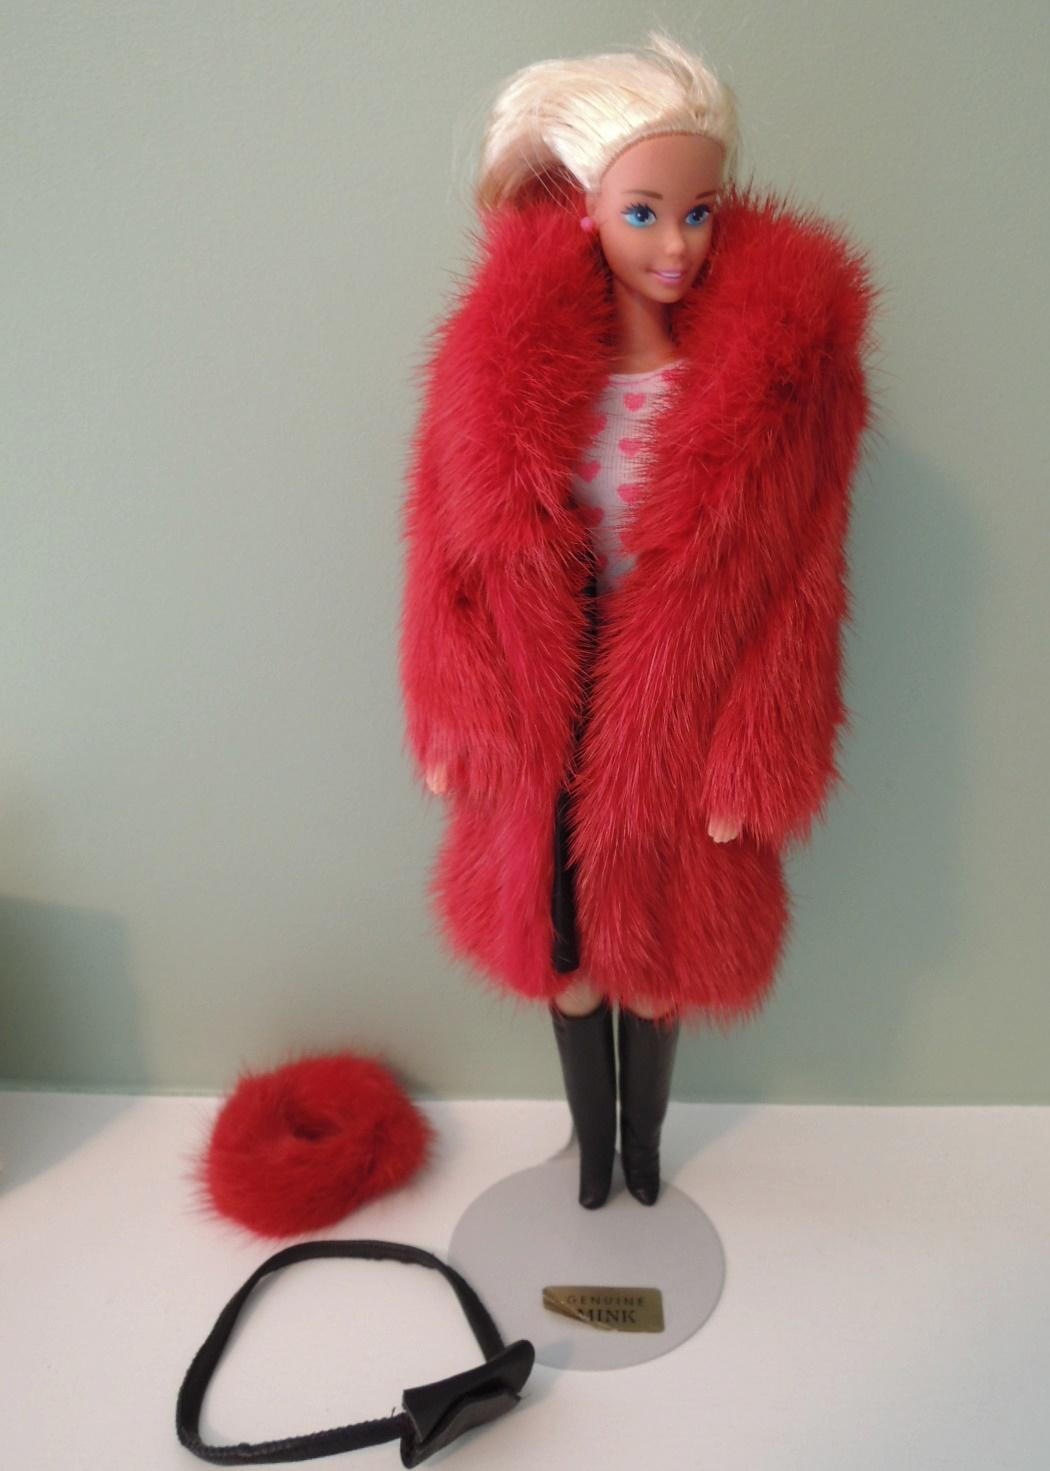 Barbie's Red Mink Coat Hat & Leather Boots by Lara's Fur Fashion